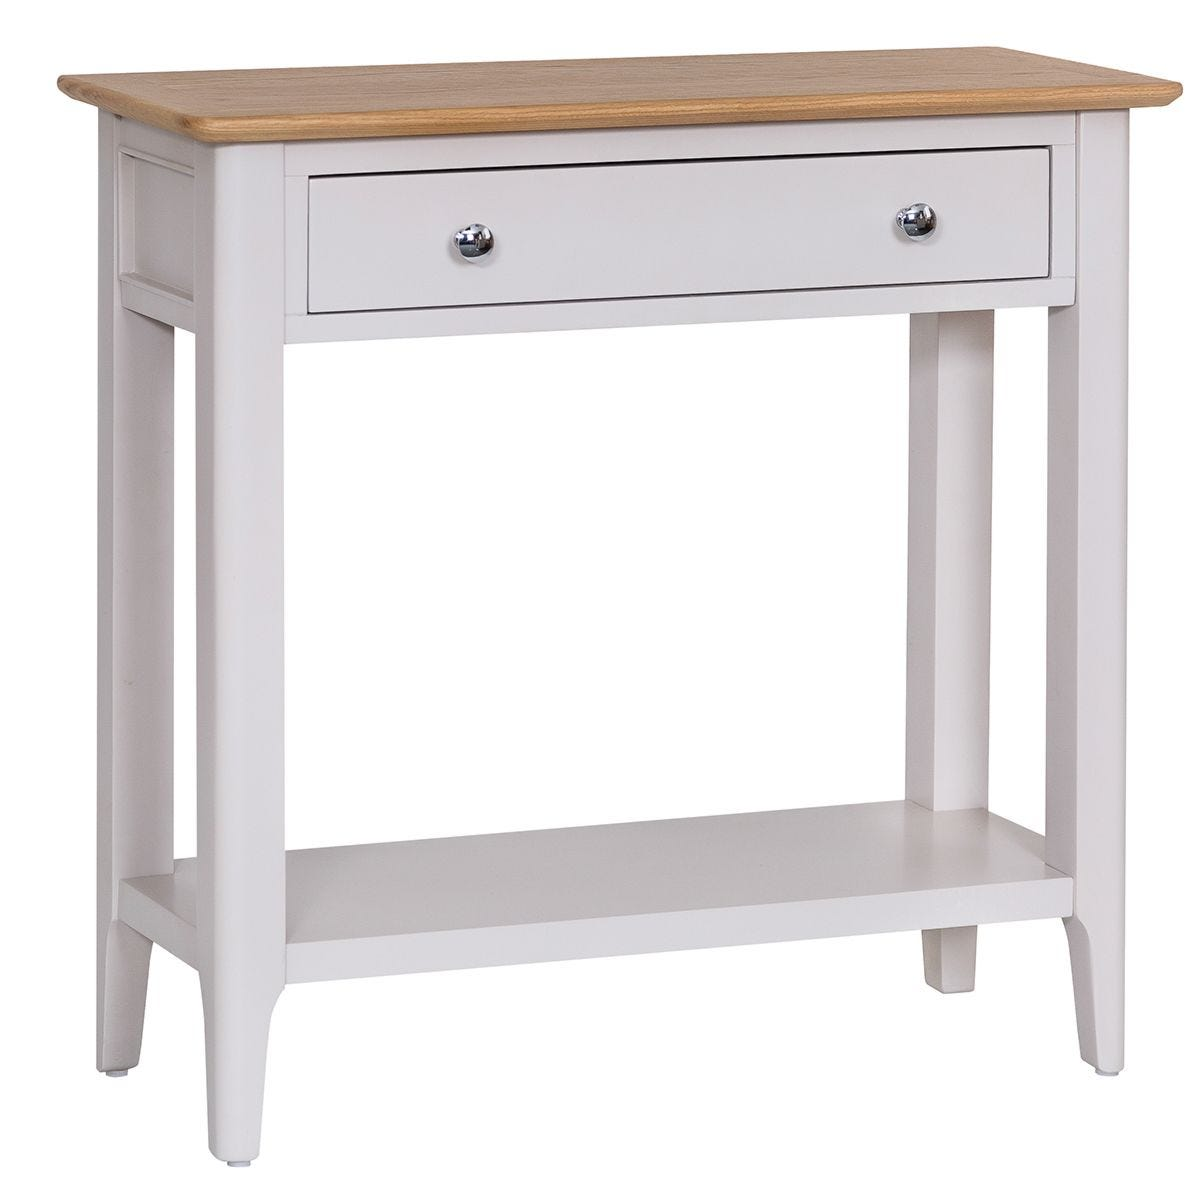 Notswood Console Table